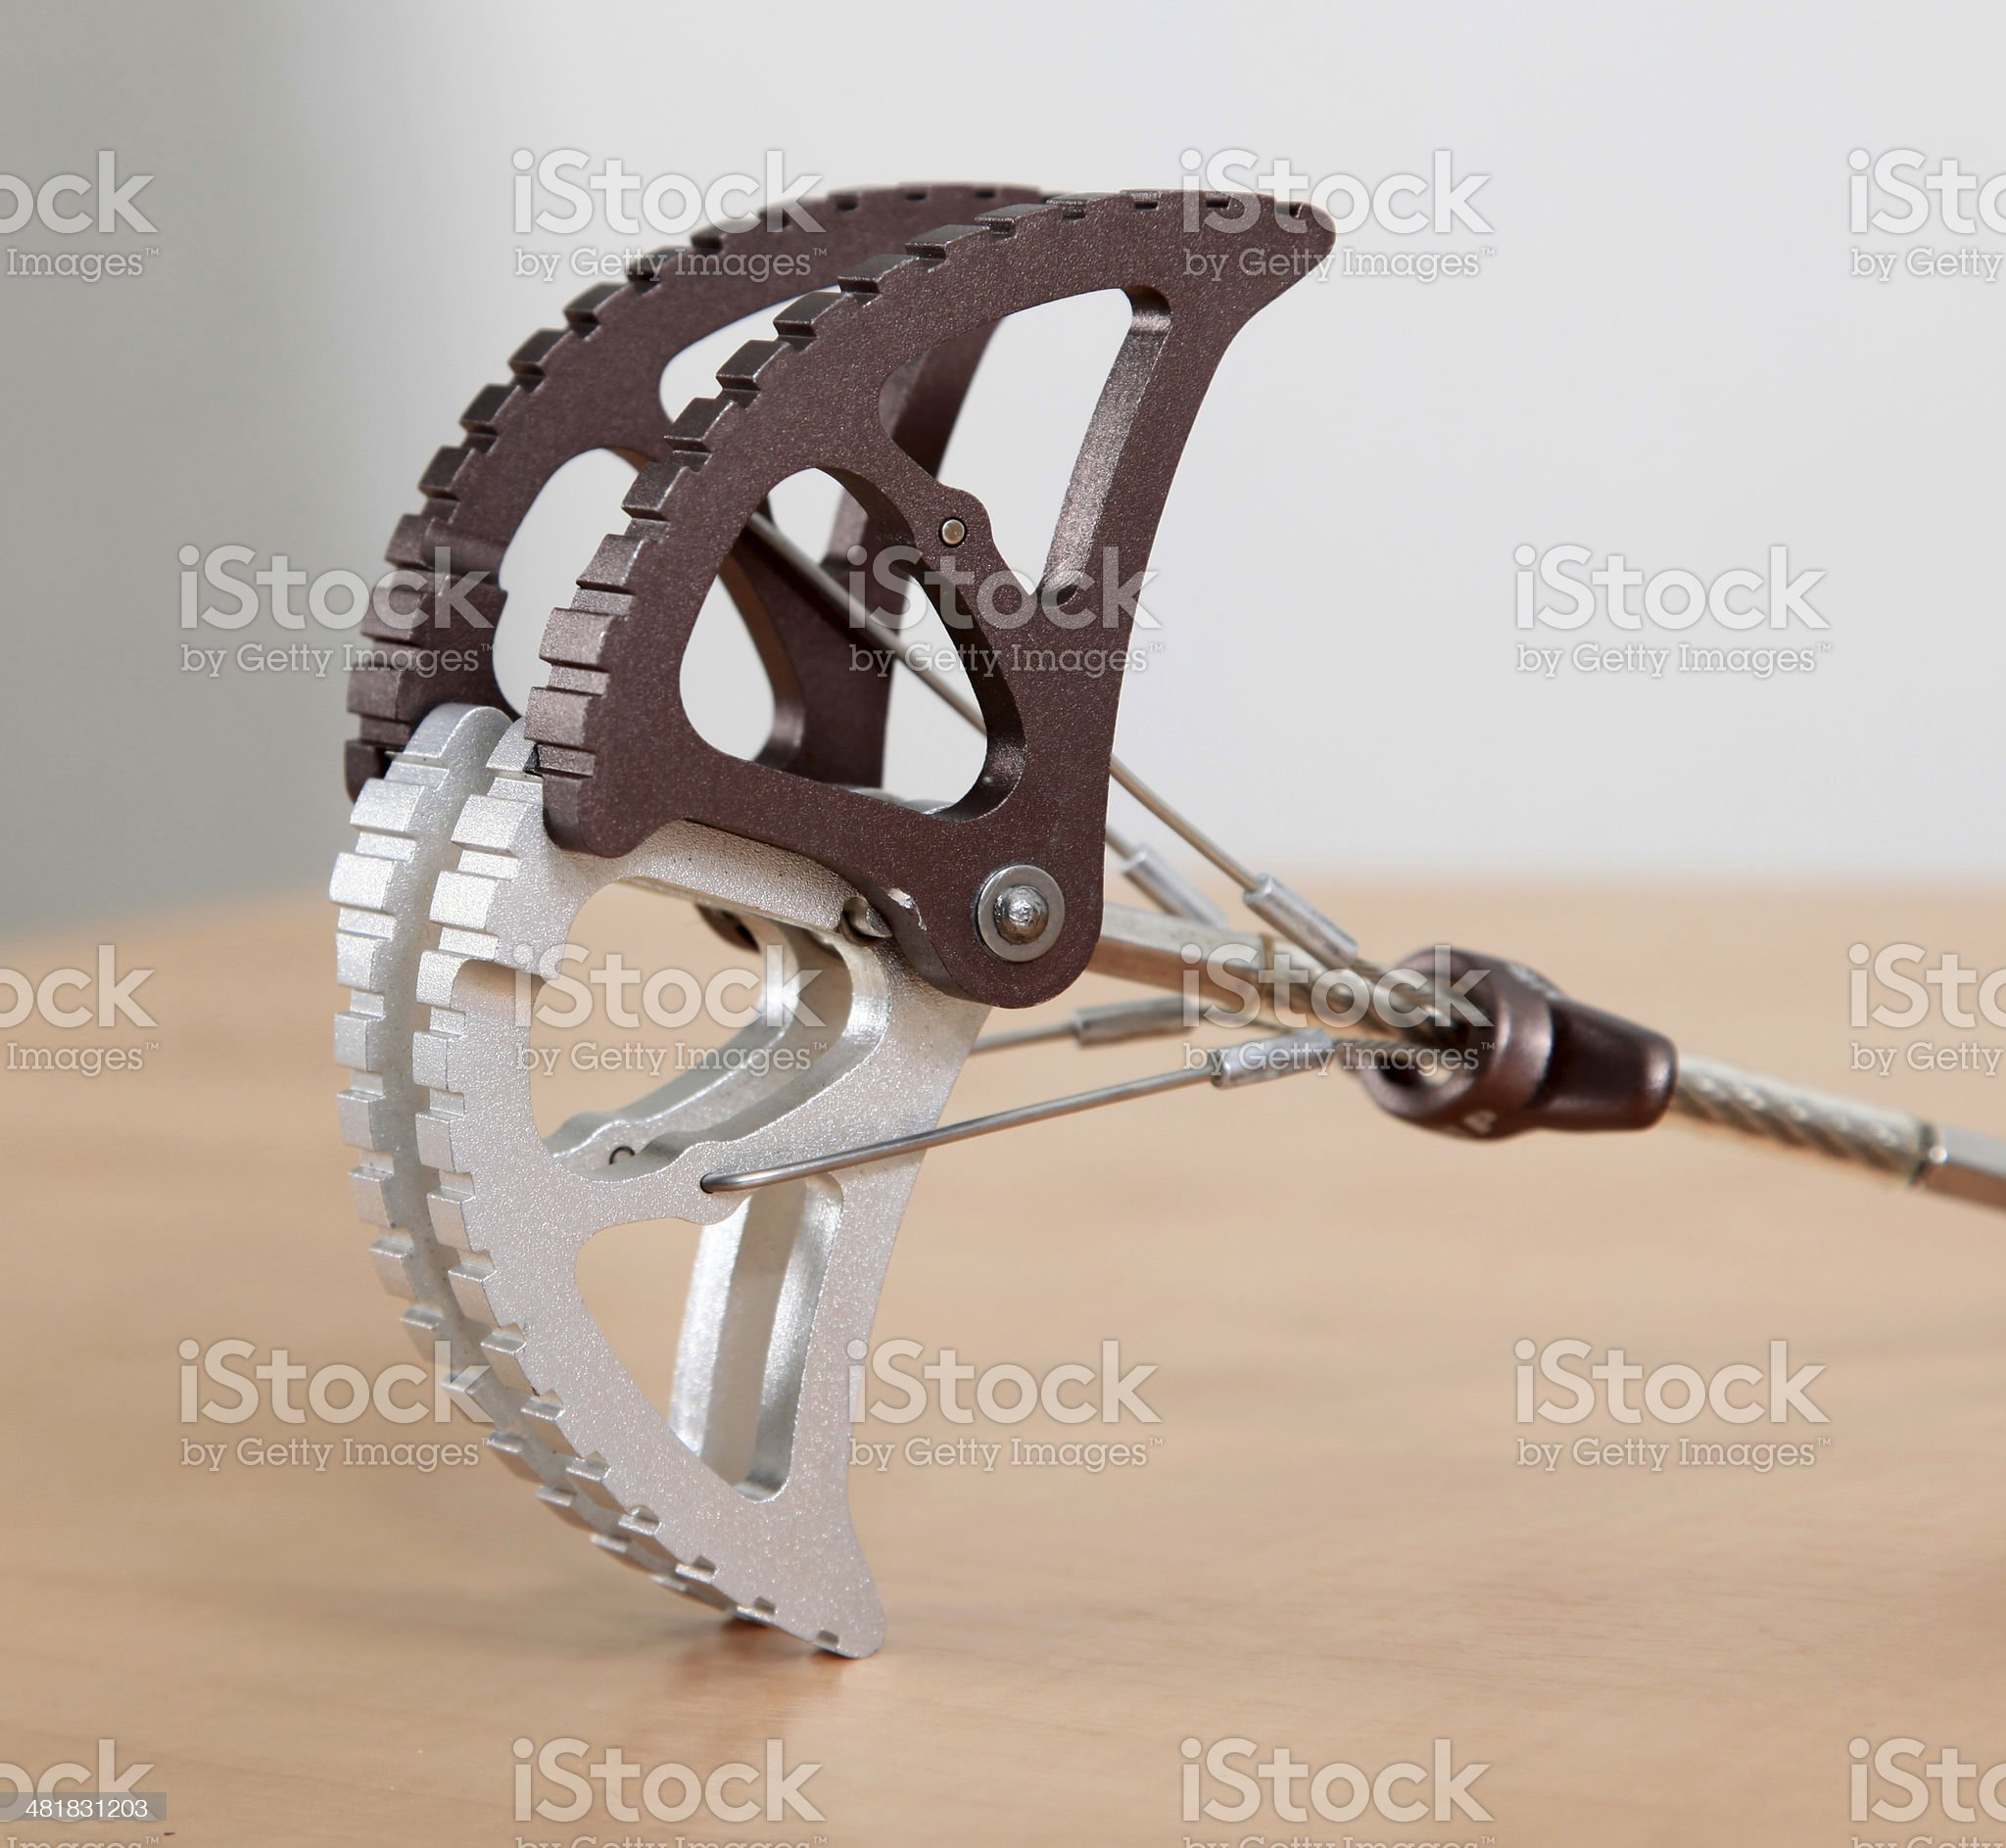 Rock climbing camming devise royalty-free stock photo